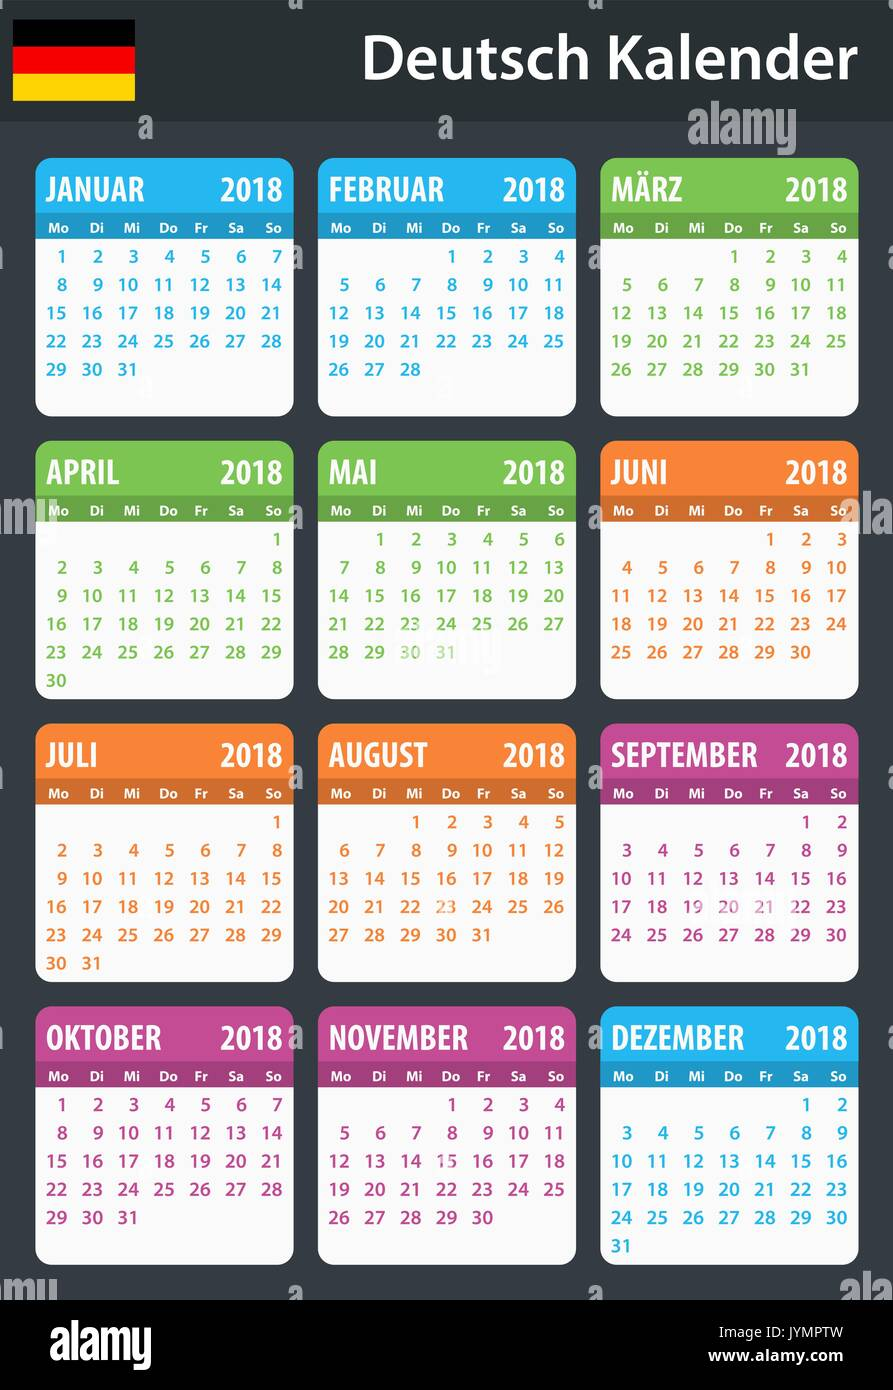 german calendar for 2018 scheduler agenda or diary template week starts on monday